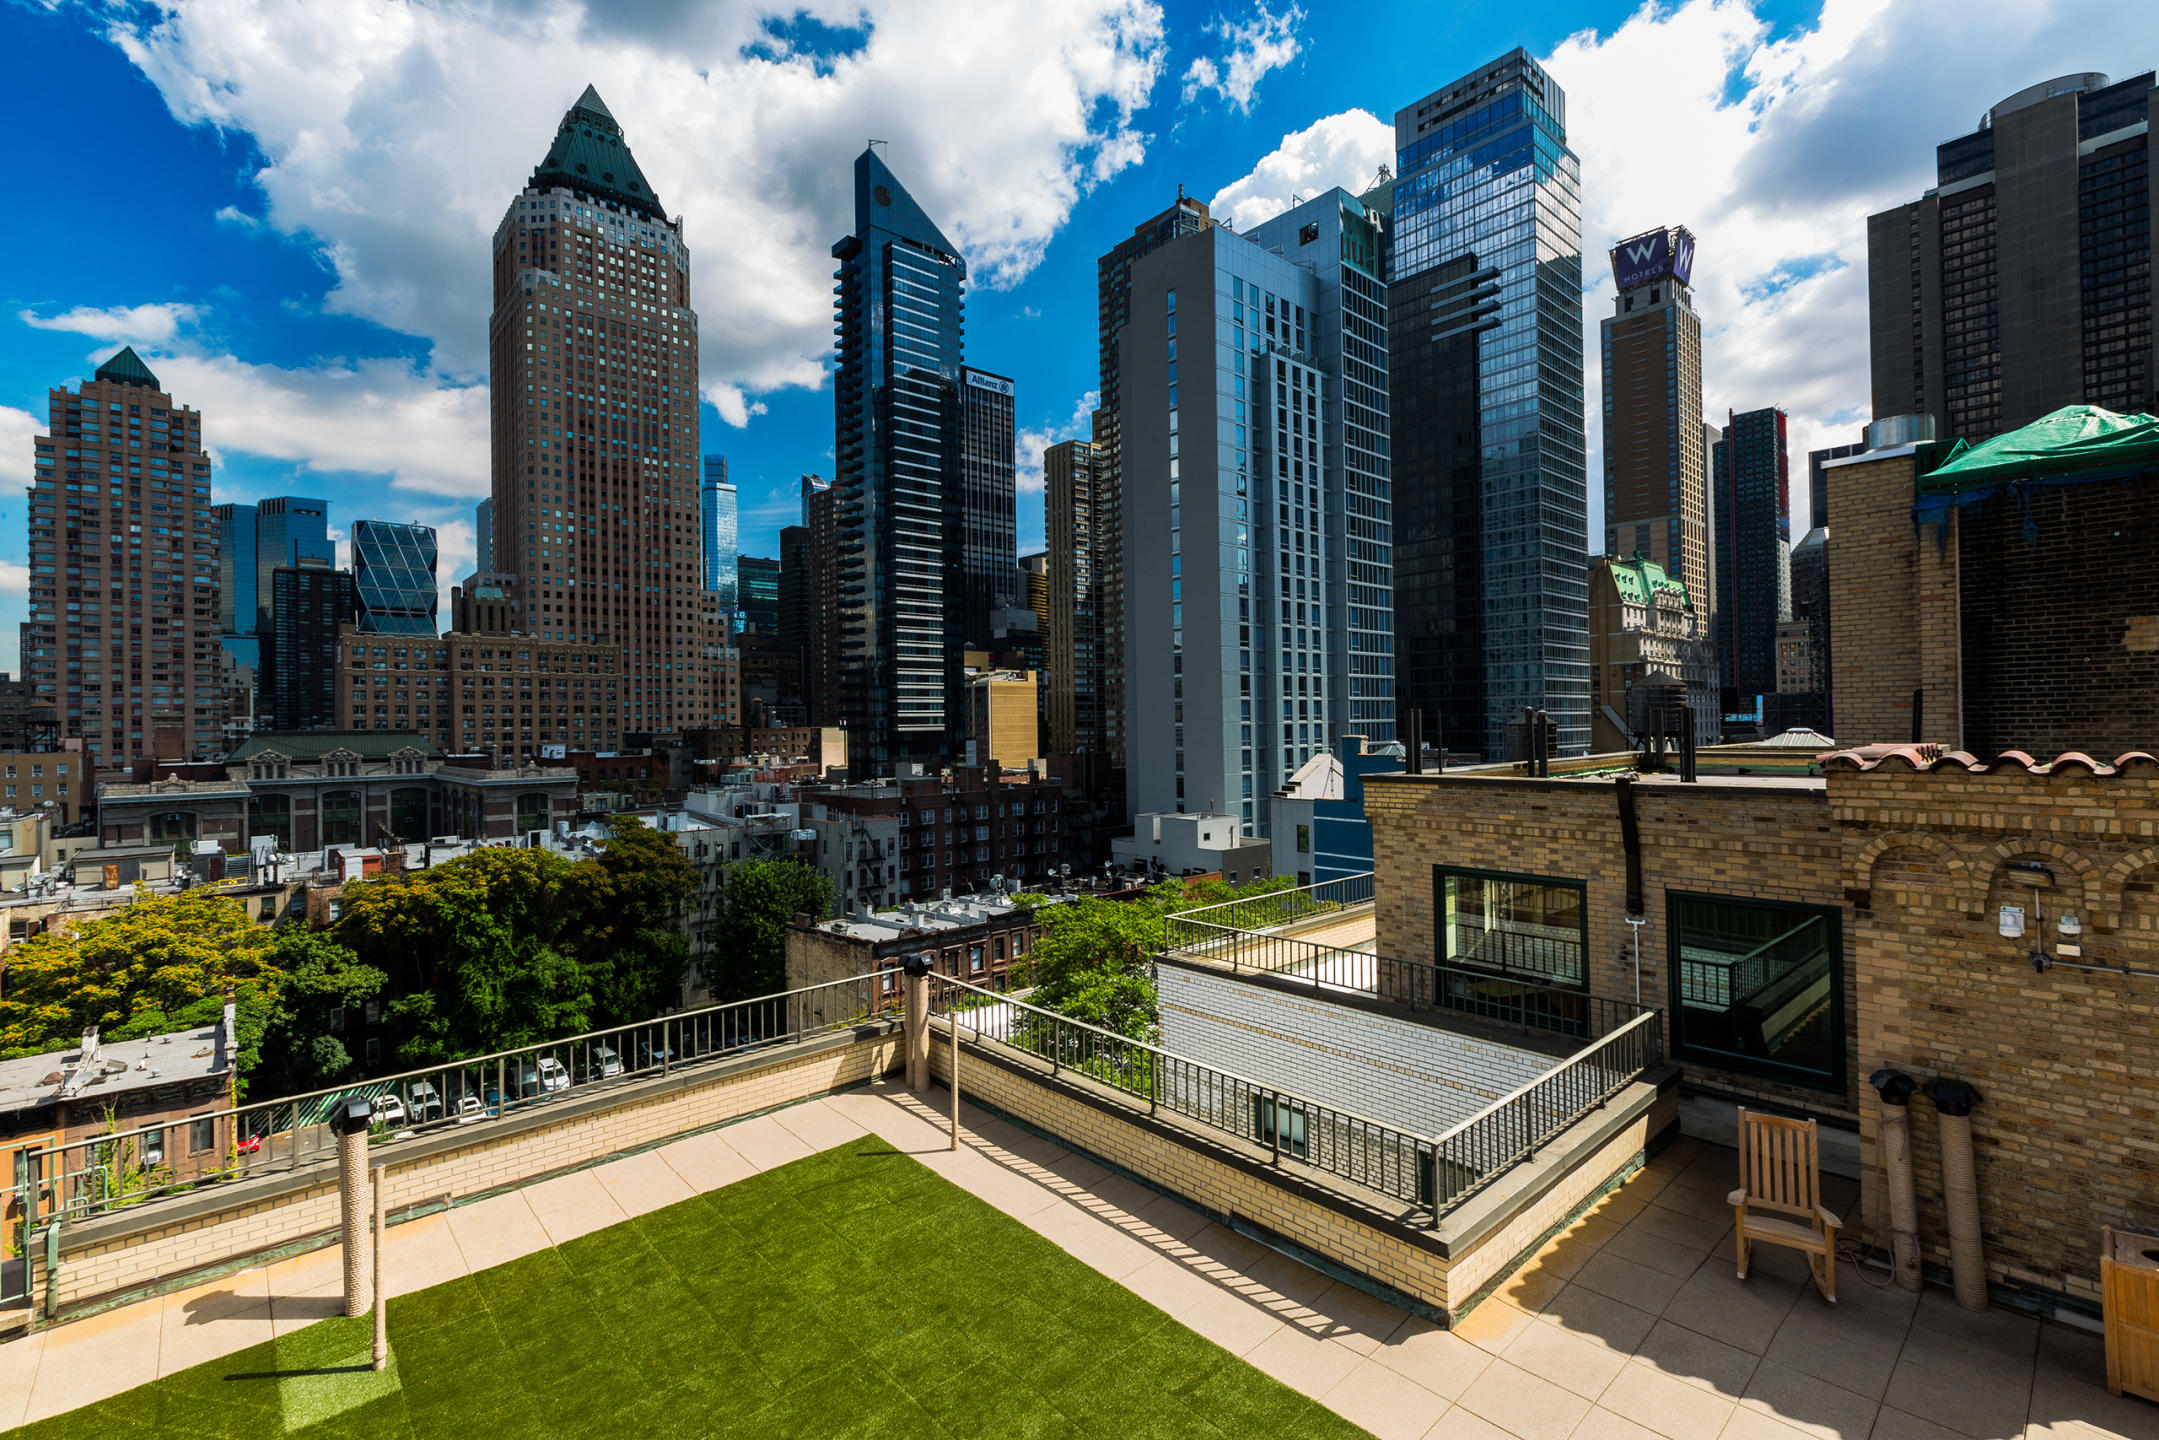 Ecore International Flooring - The Whitby  rooftop NYC : Miscellanous Projects : New York NY Architectural Photographer | Interior and Exterior